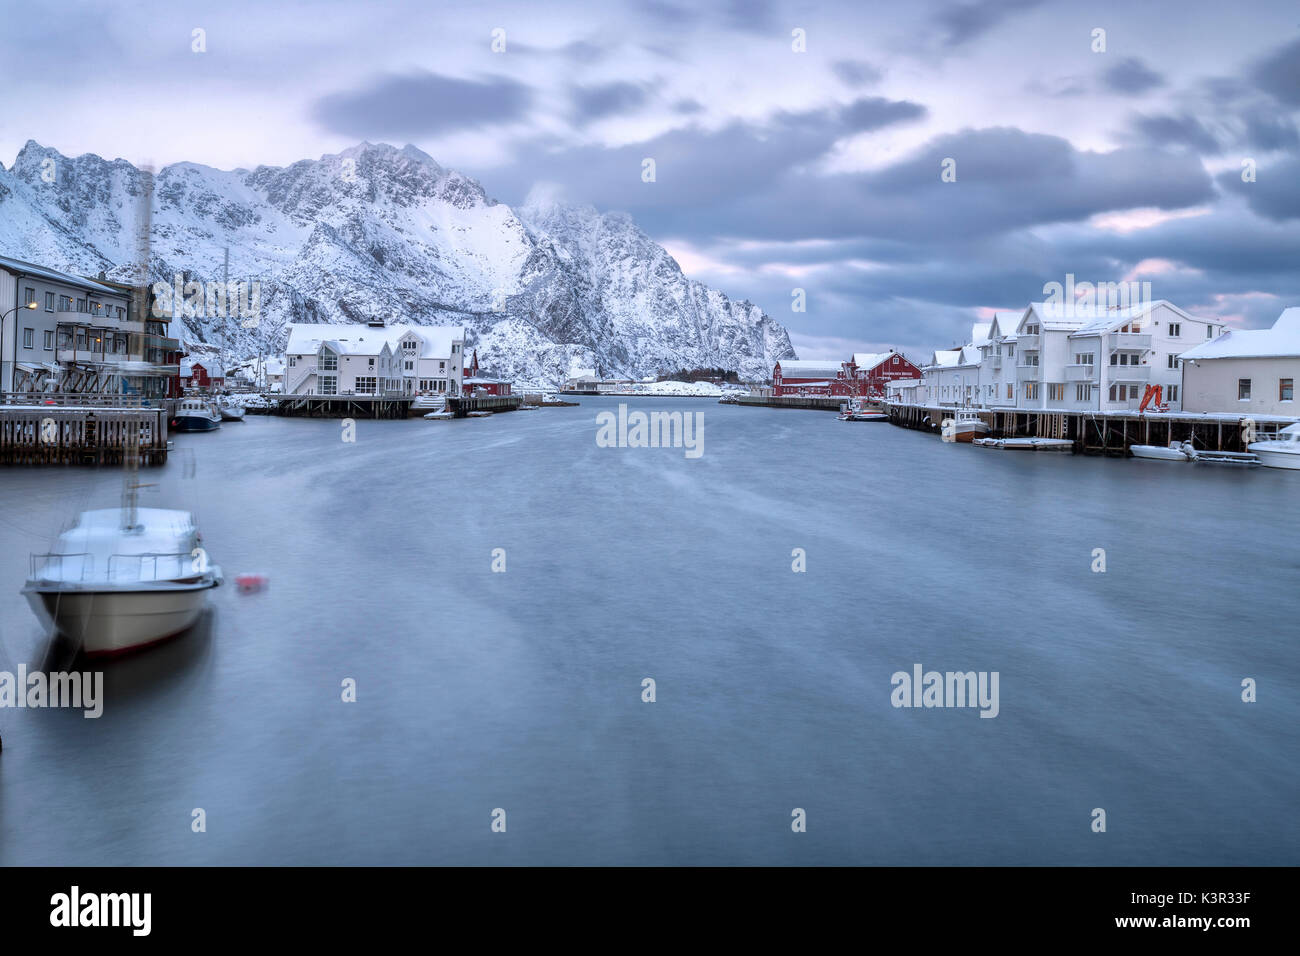 The typical fishing village of Henningsvaer surrounded by snow capped mountains and the cold sea Lofoten Islands Northern Norway Europe - Stock Image